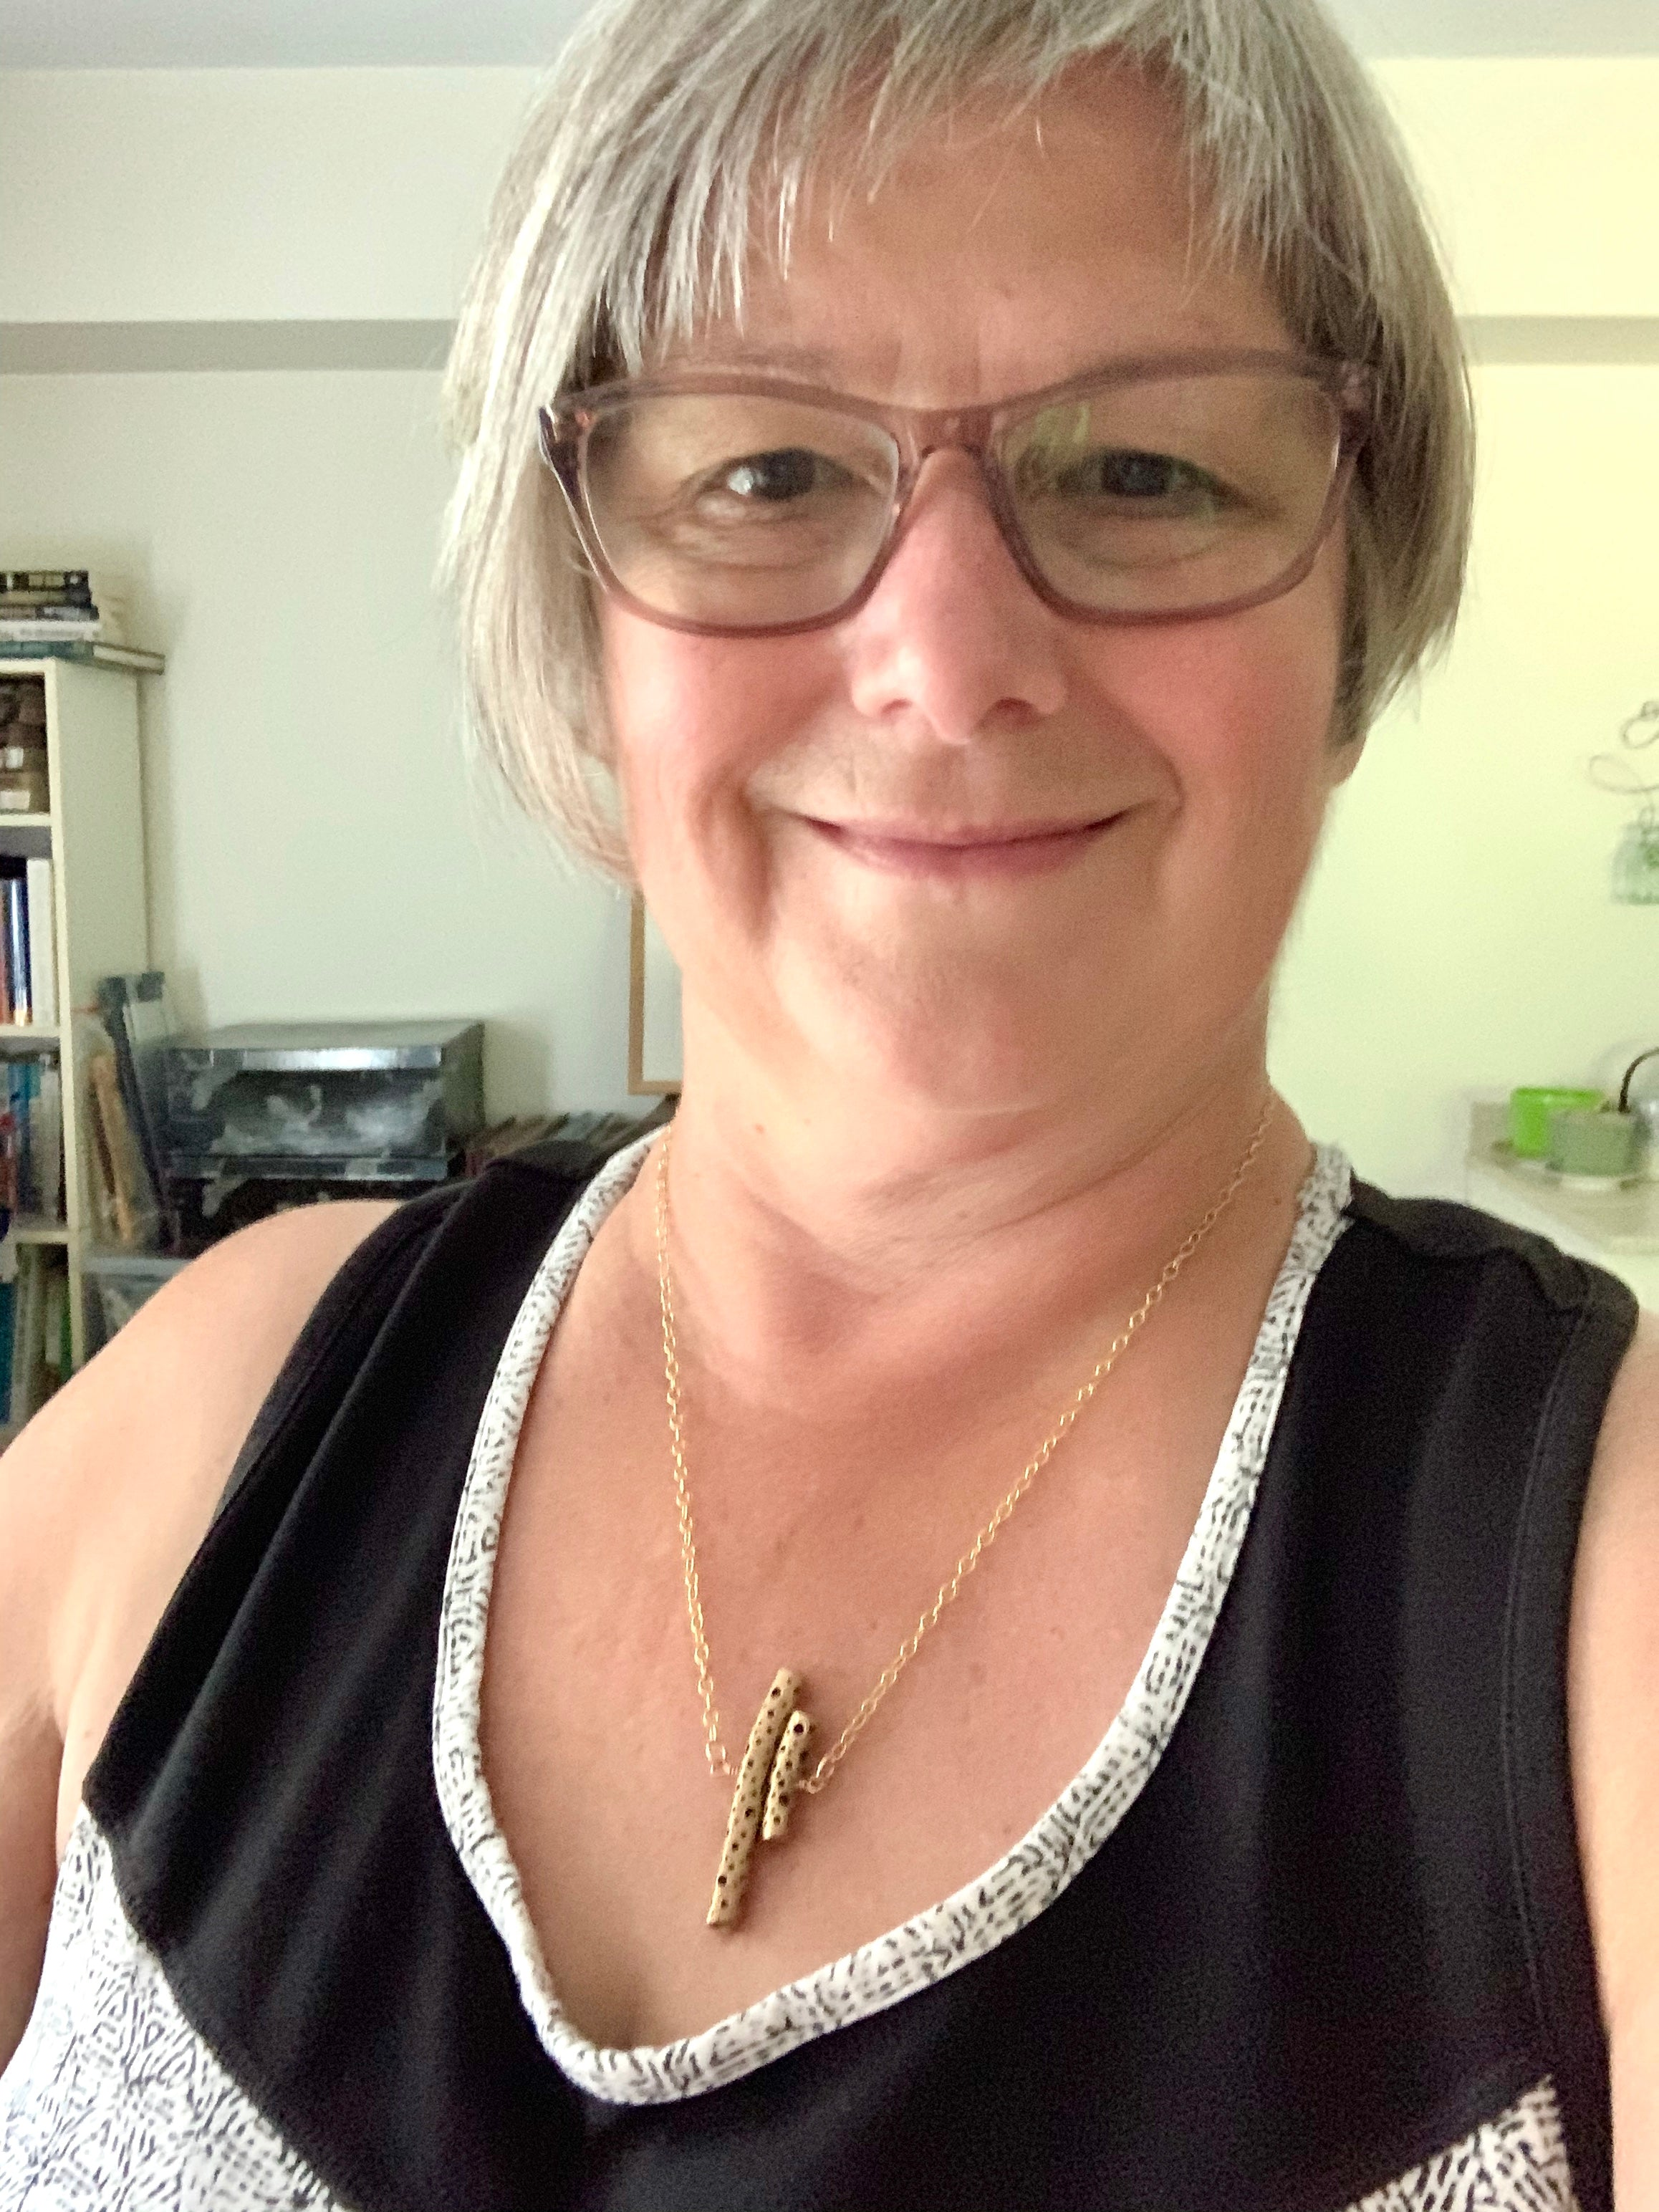 Wearing bronze artisan necklace for everyday casual